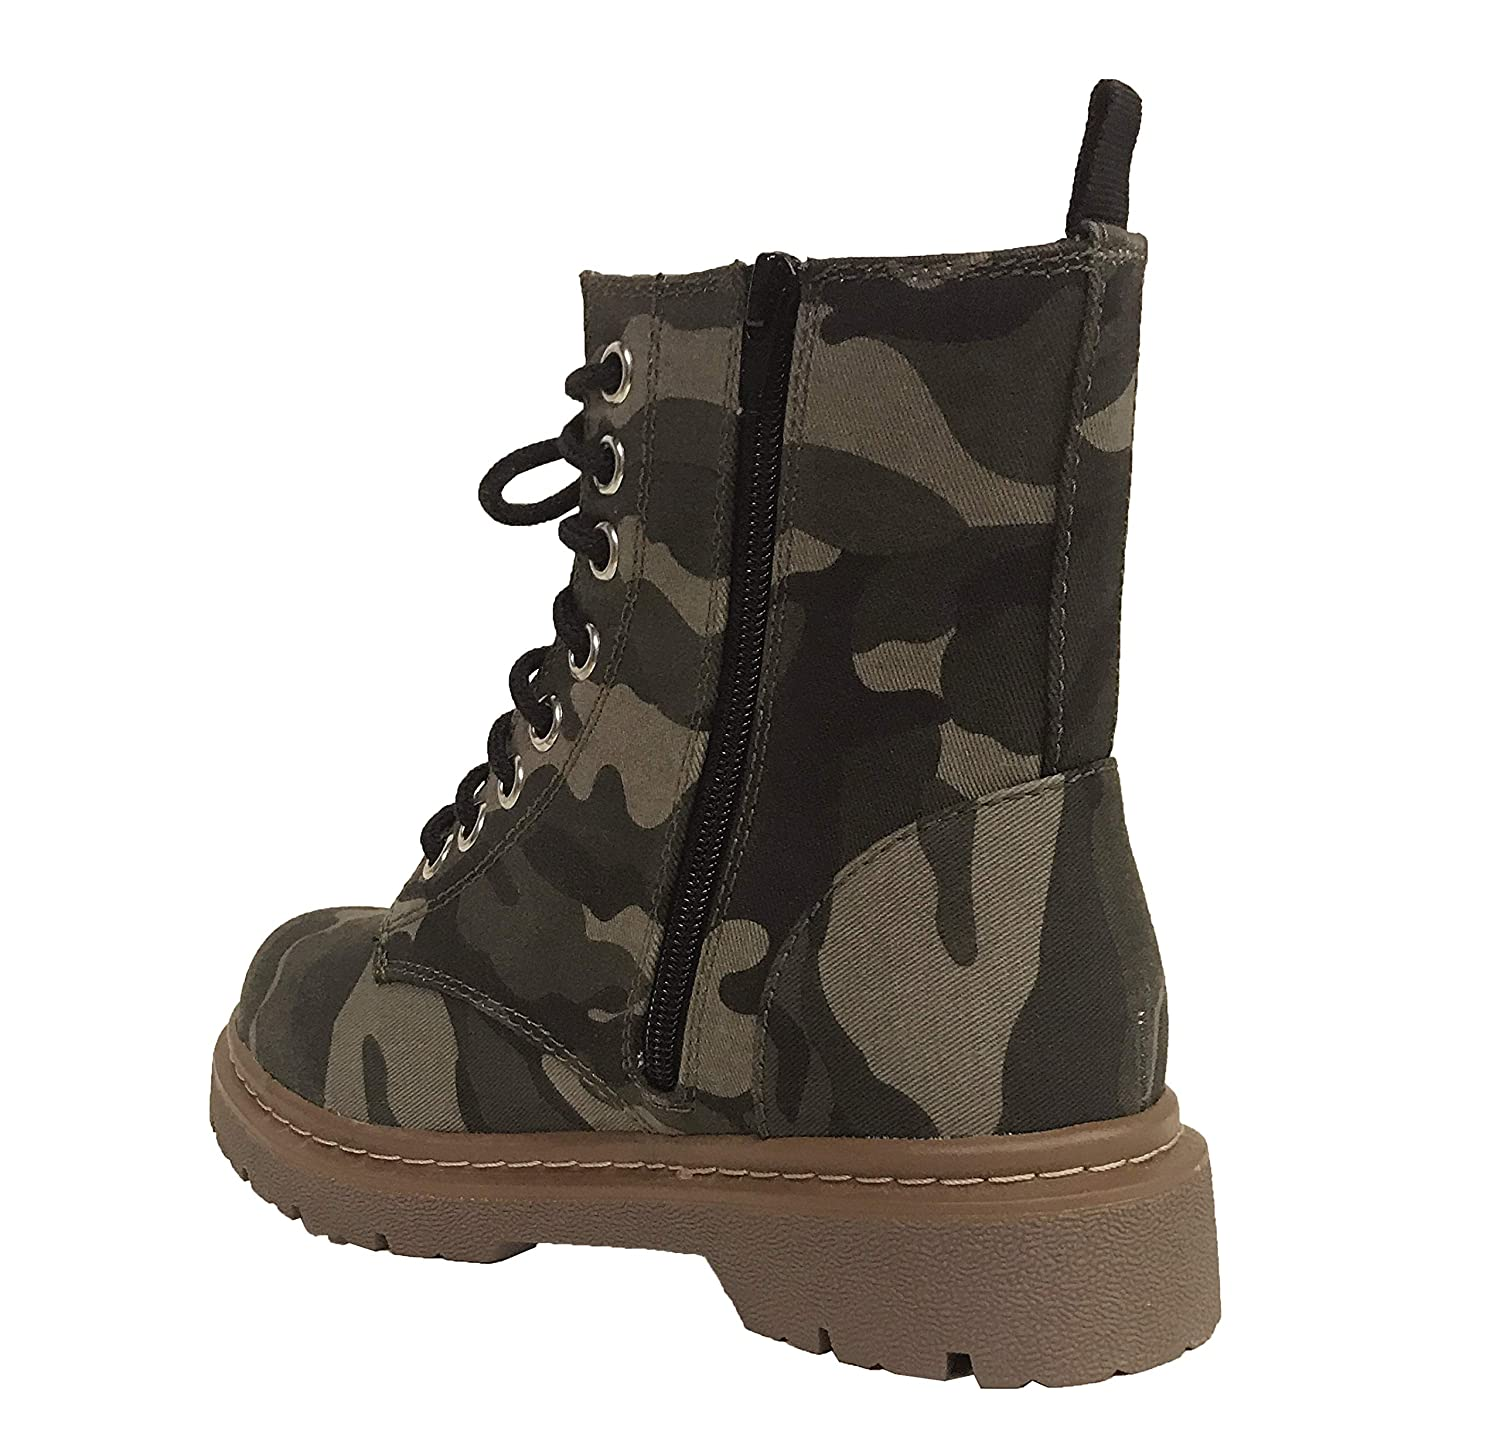 8e9c36ee4 Amazon.com   SODA Gerda Women's Rose Embroidered Lace Up Combat Boots    Ankle & Bootie